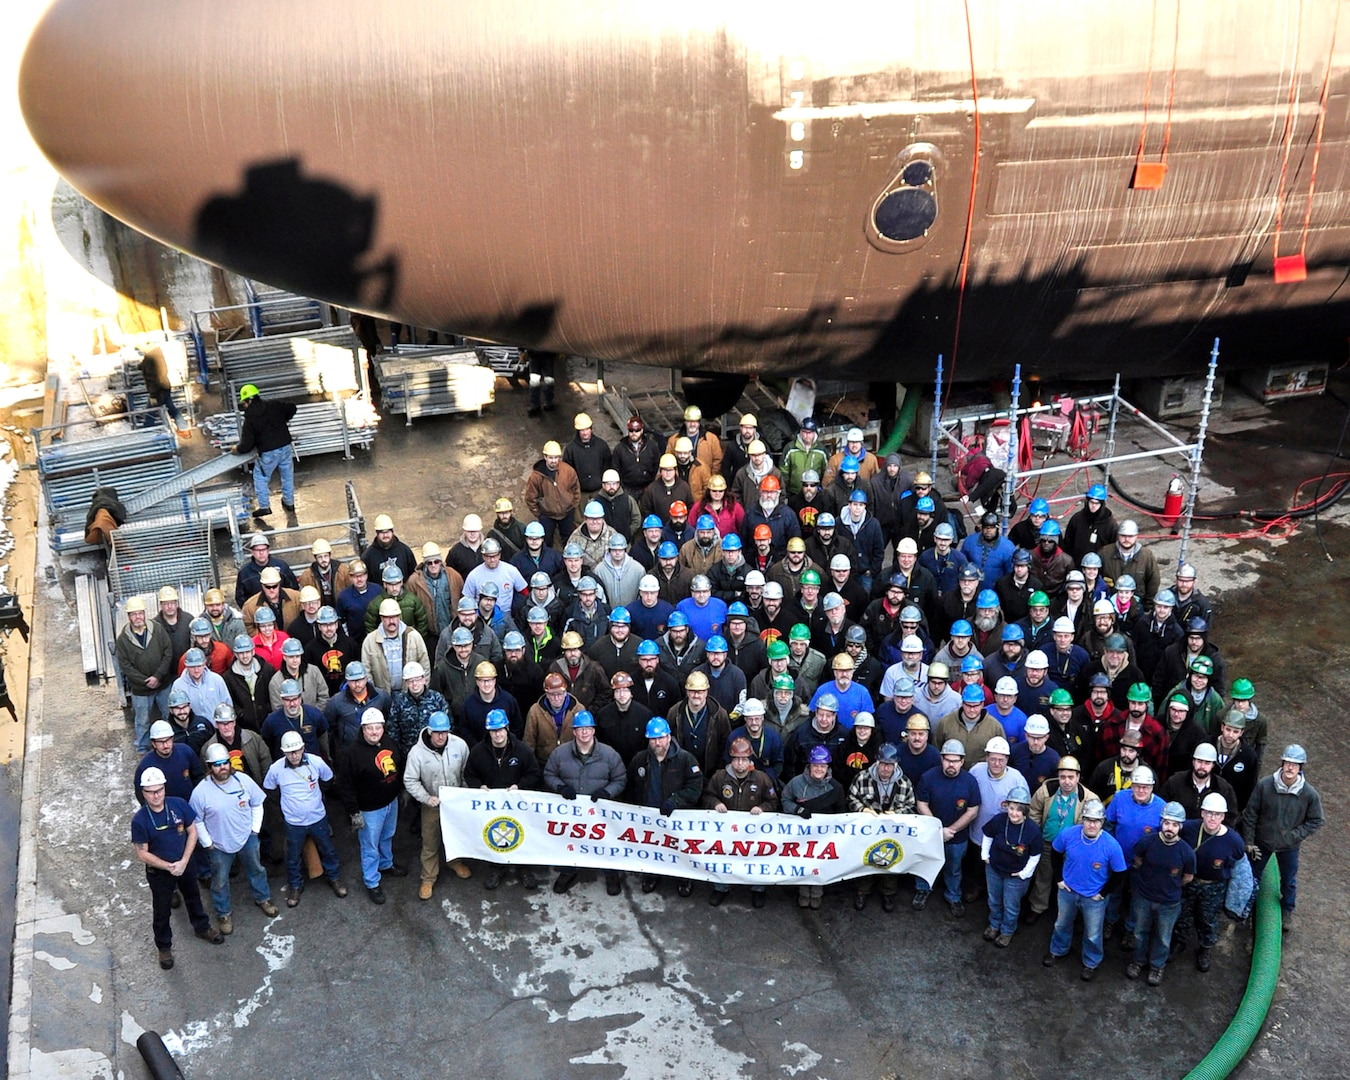 KITTERY, MAINE - Portsmouth Naval Shipyard workers gather in front of USS Alexandria (SSN 757) during its engineering overhaul, the fastest in the Navy's history.